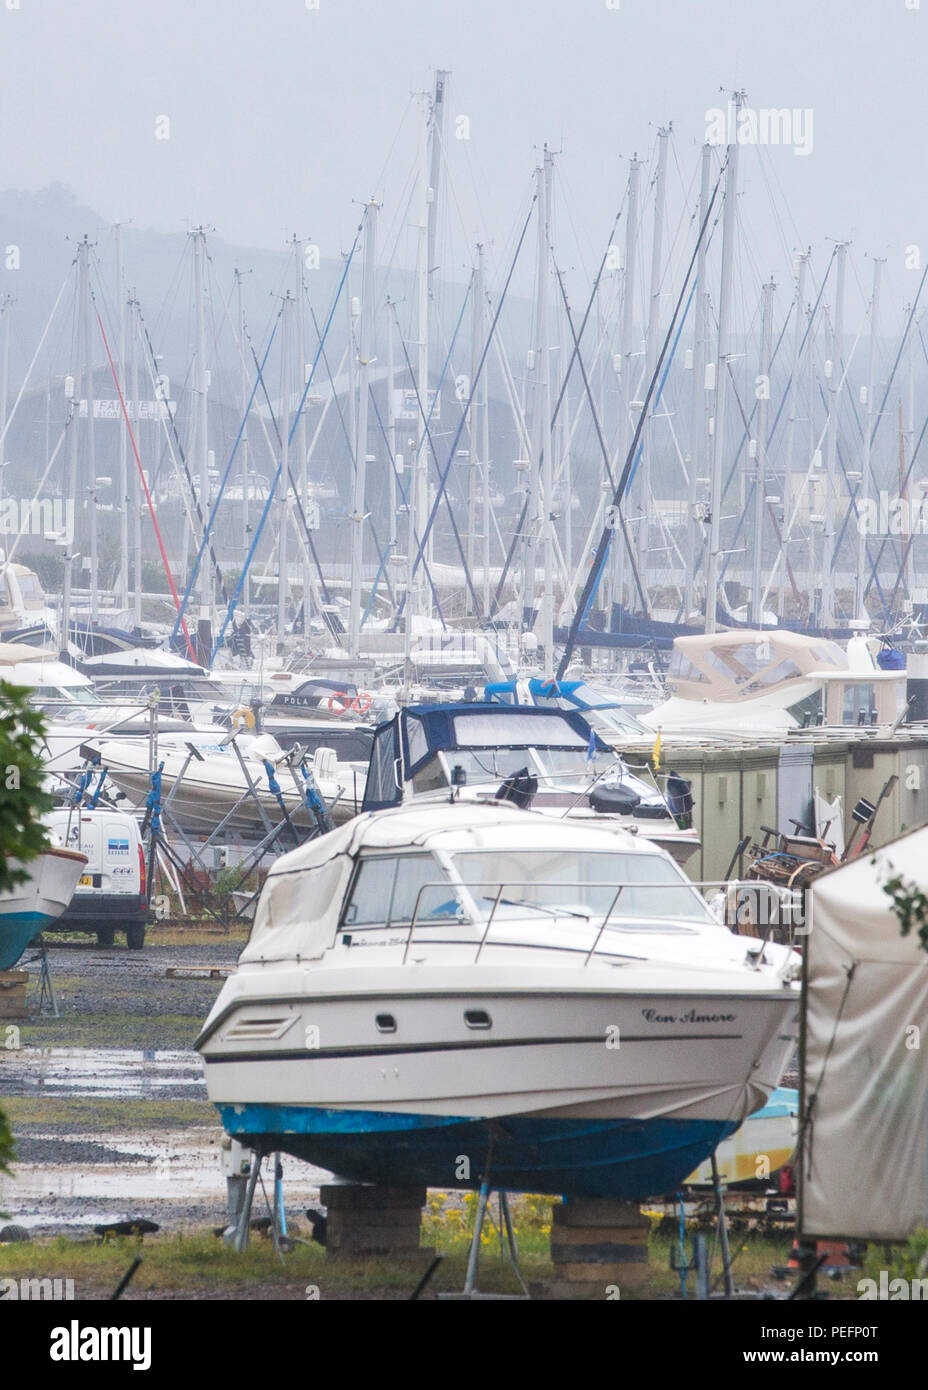 Largs Yacht Haven Marina, North Ayrshire, Scotland - Stock Image